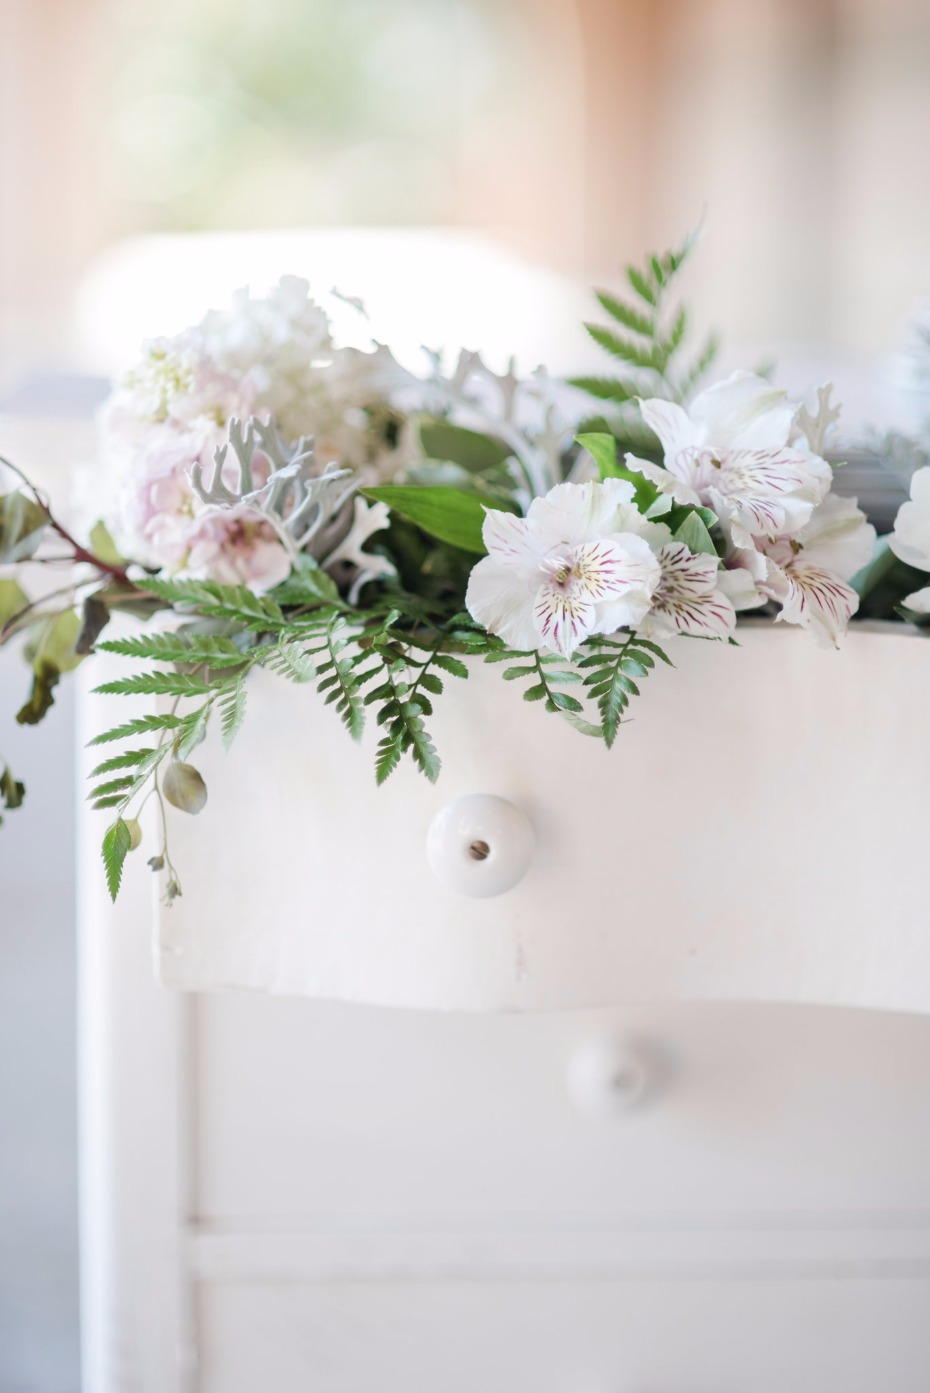 wedding dresser for your cake table filled with flowers